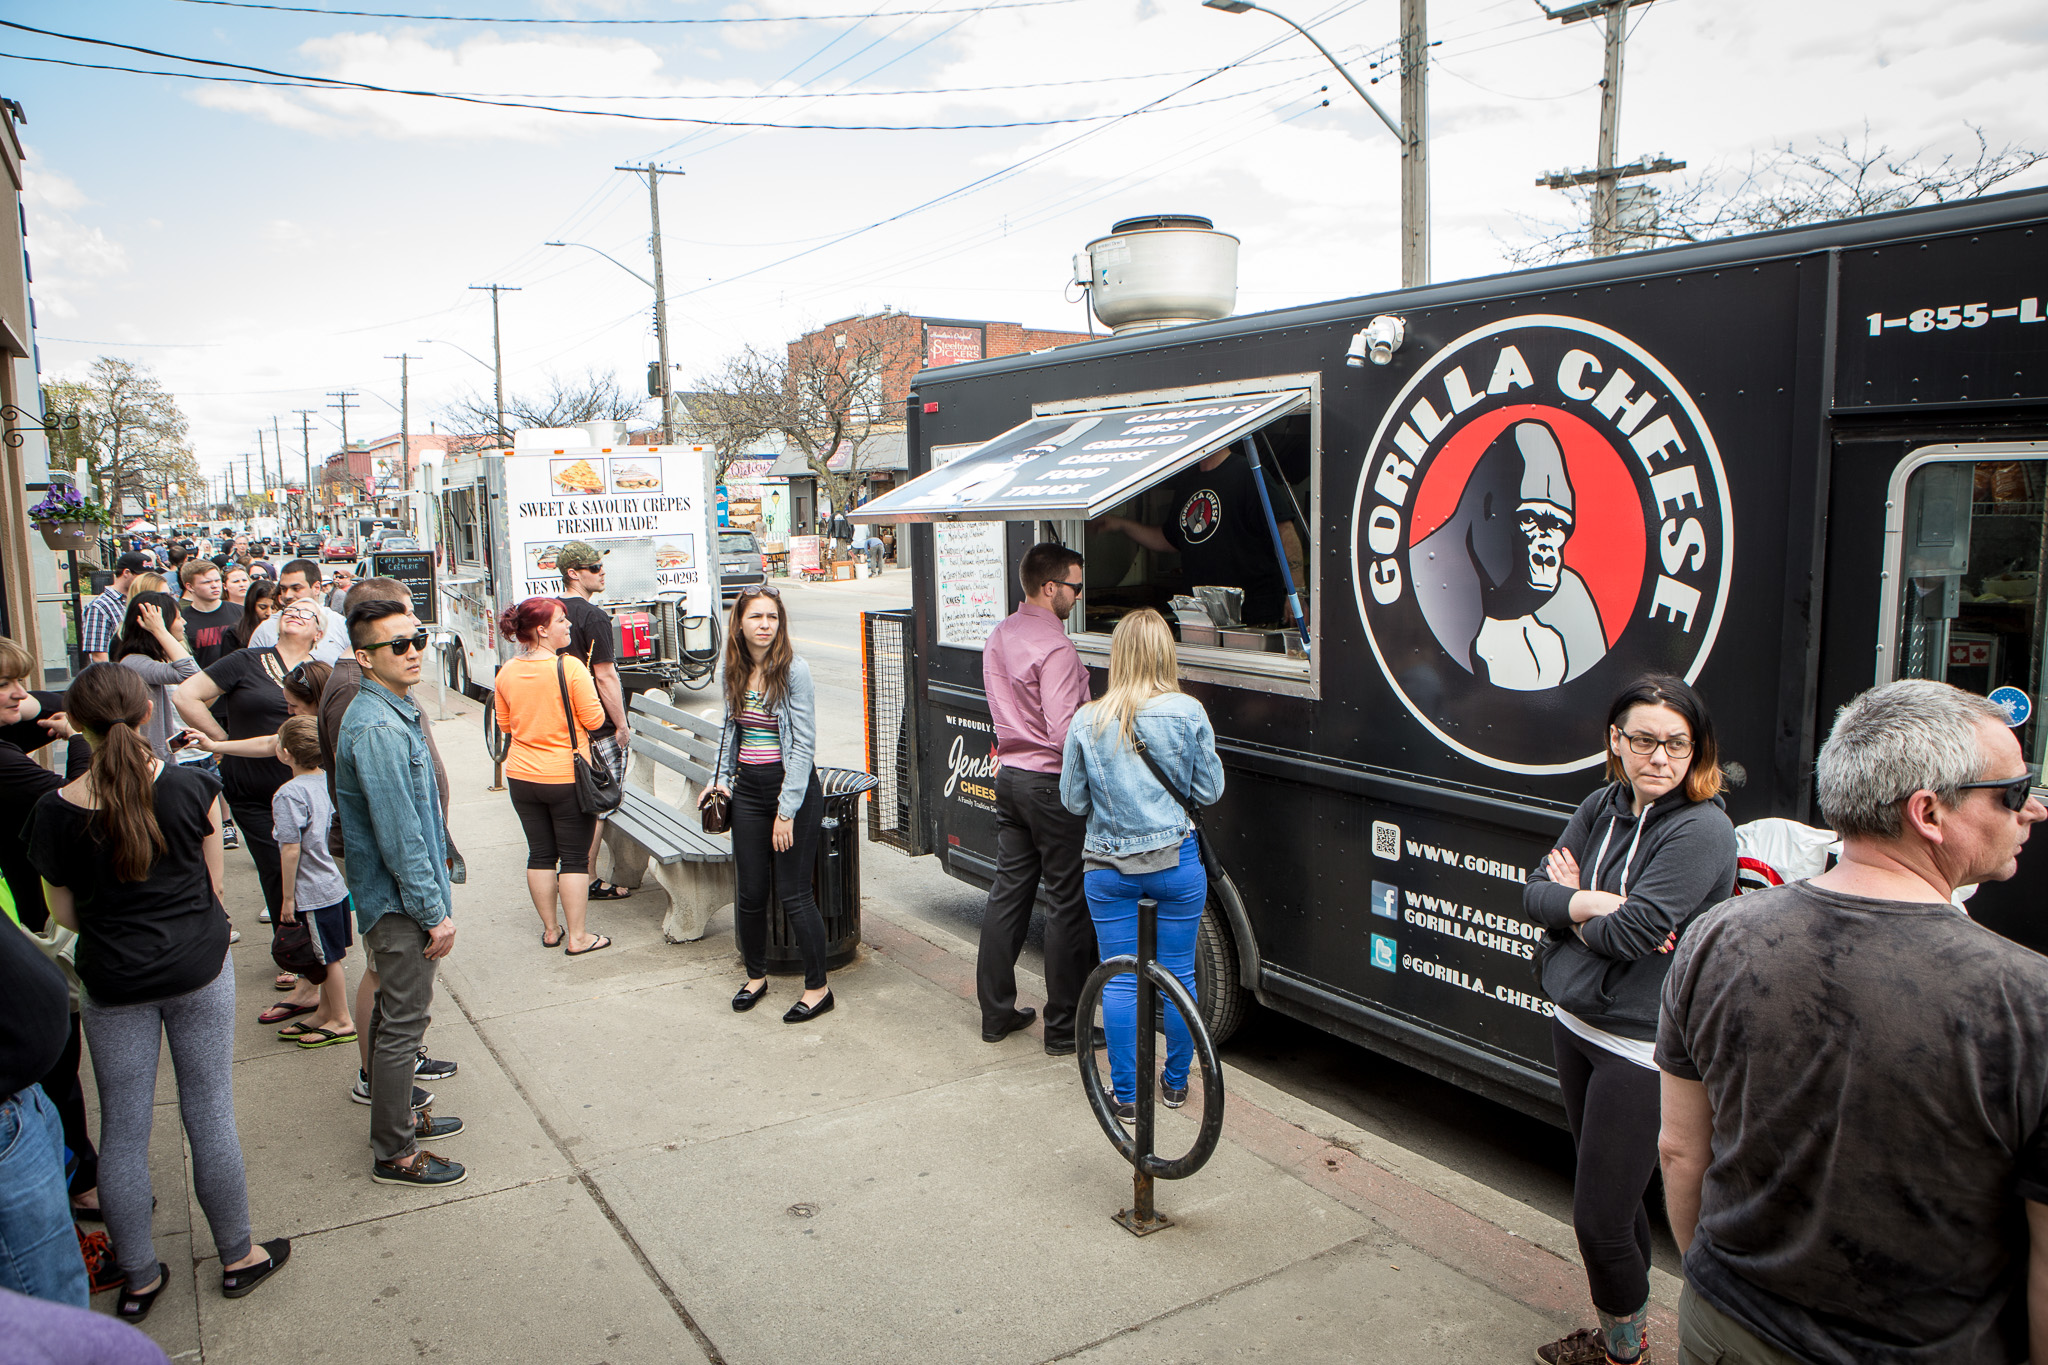 20150501-sewhungry2048-51